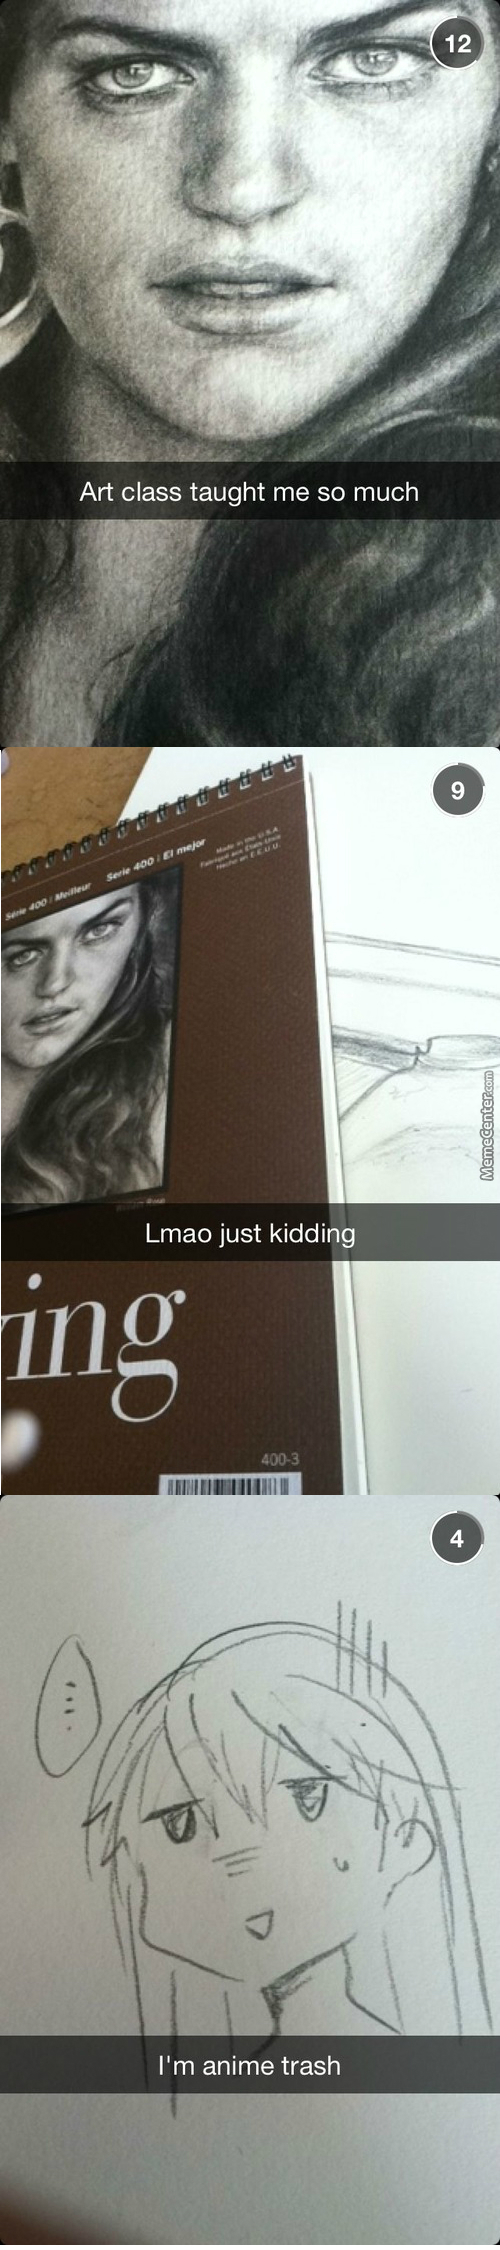 Same, Last Time I Tried To Draw Realistically My D*** Caught On Fire